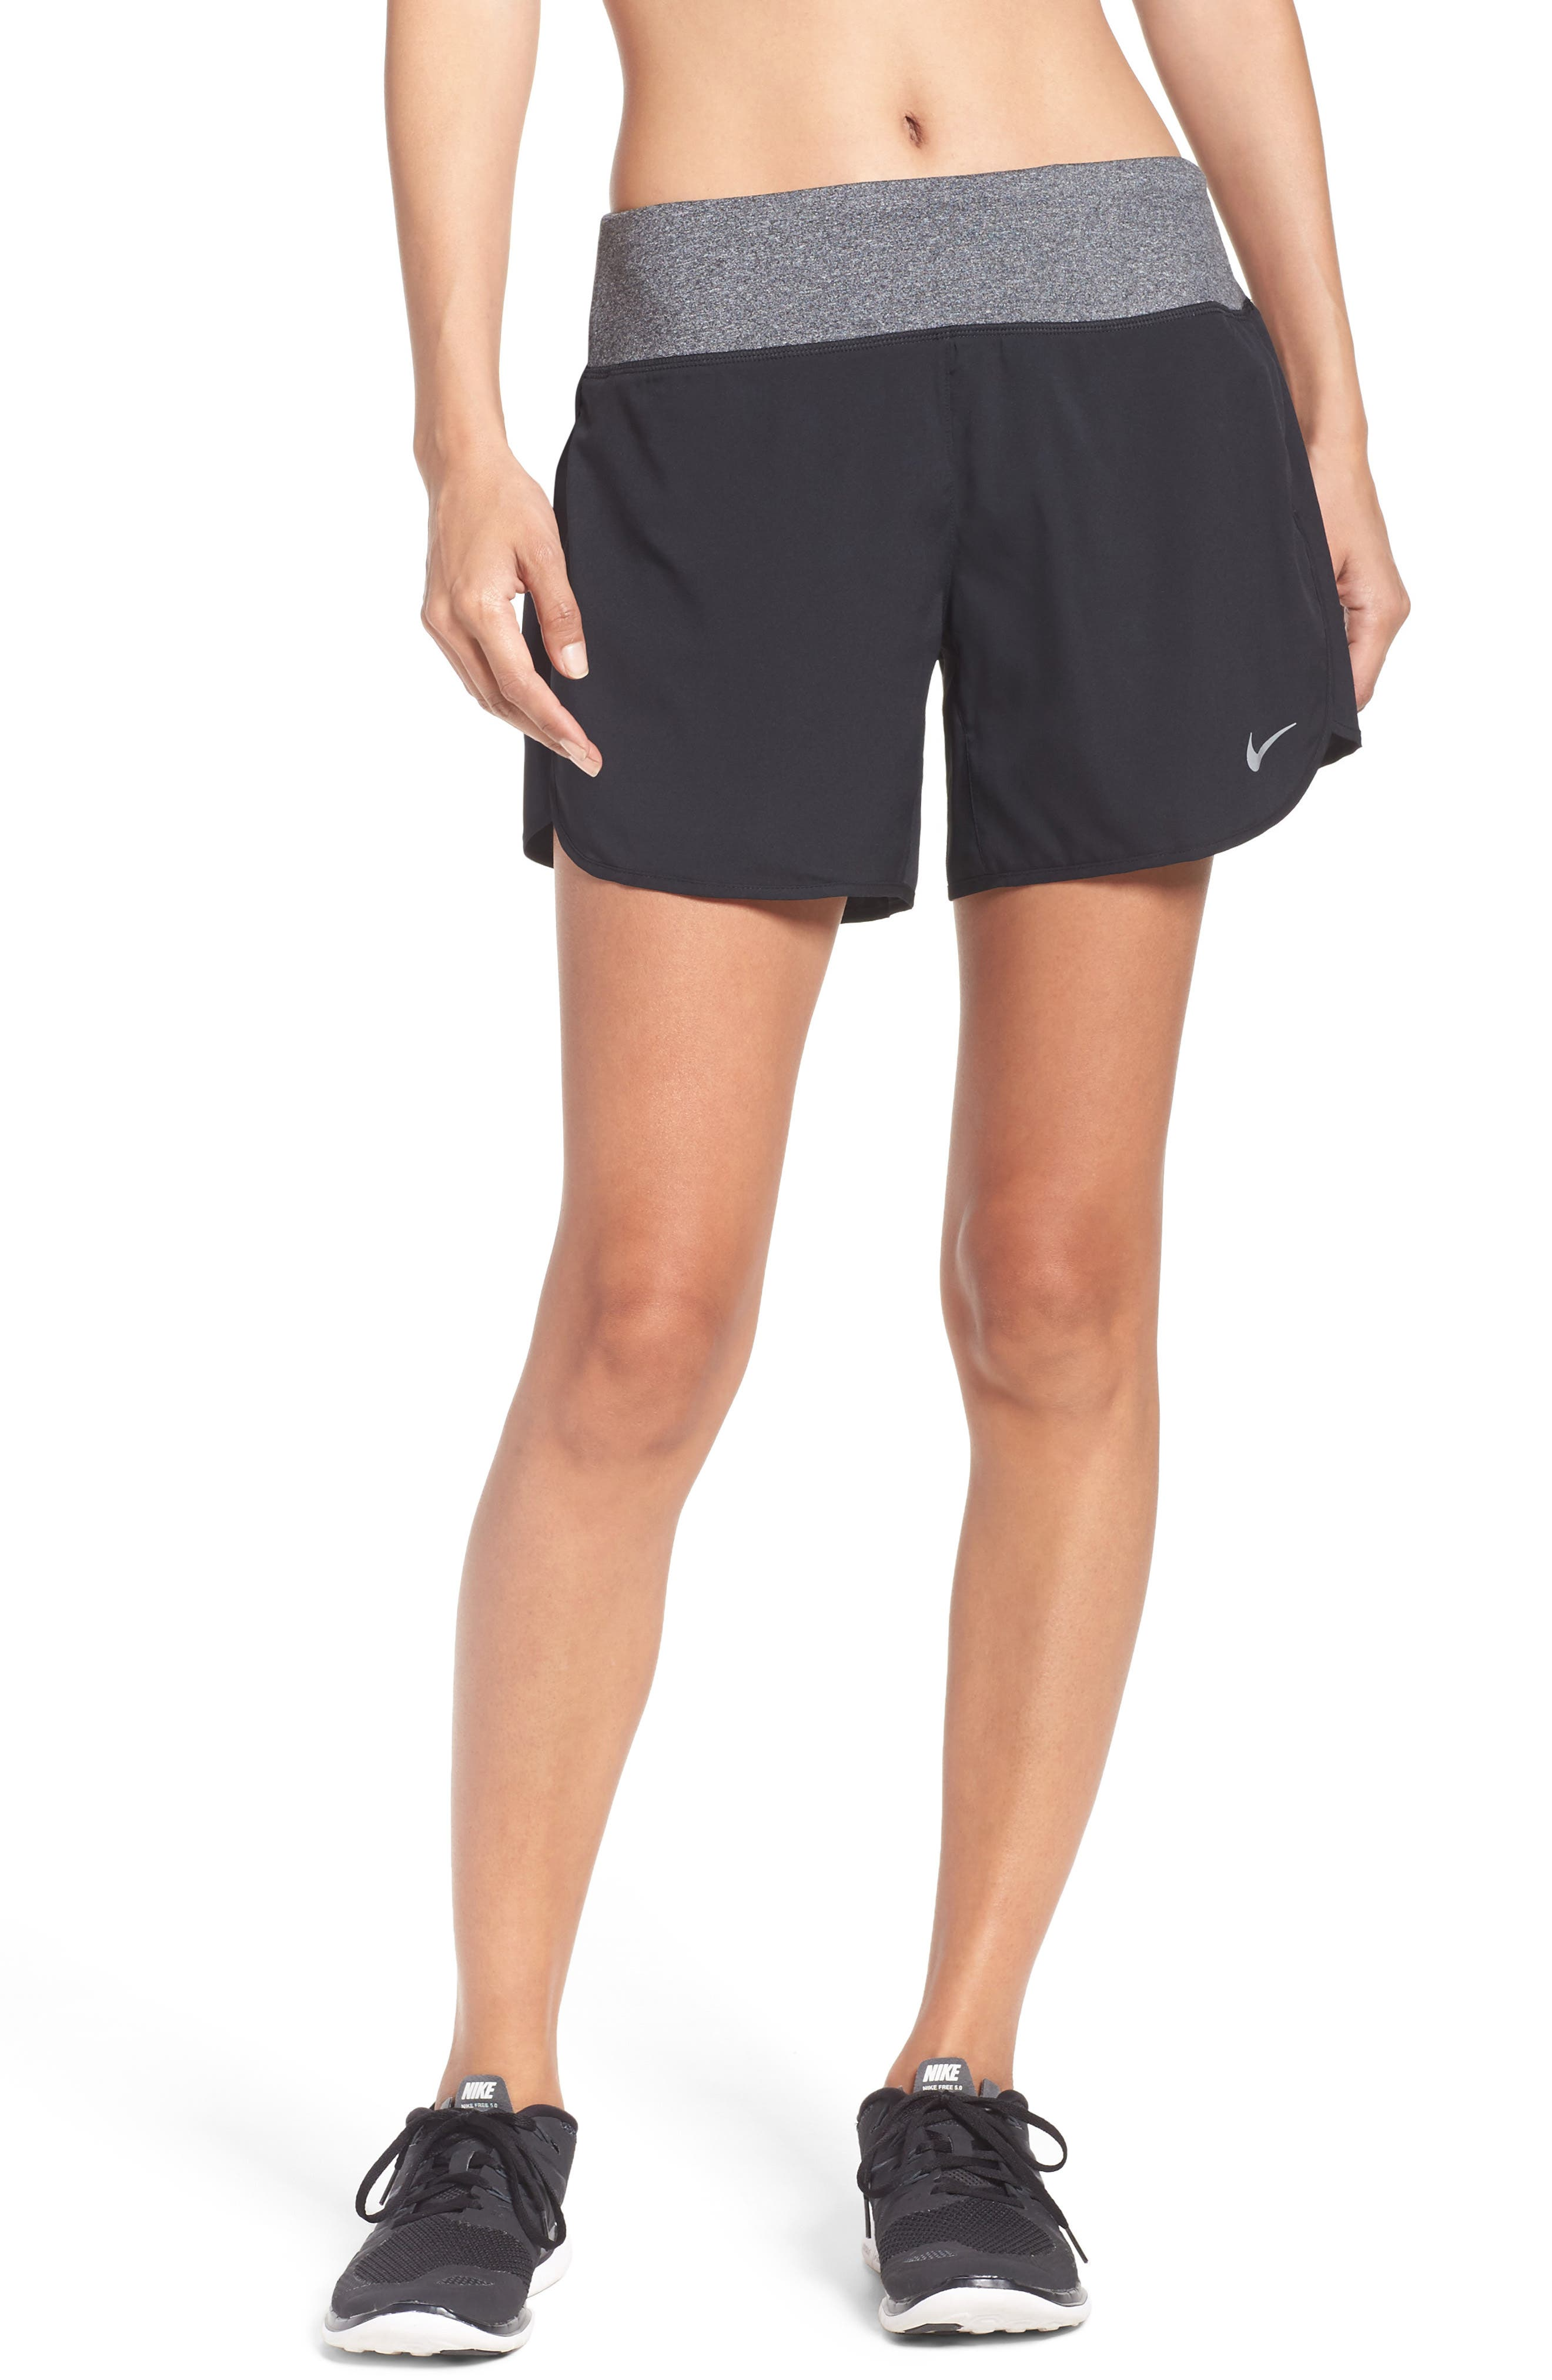 Flex Running Shorts,                         Main,                         color,